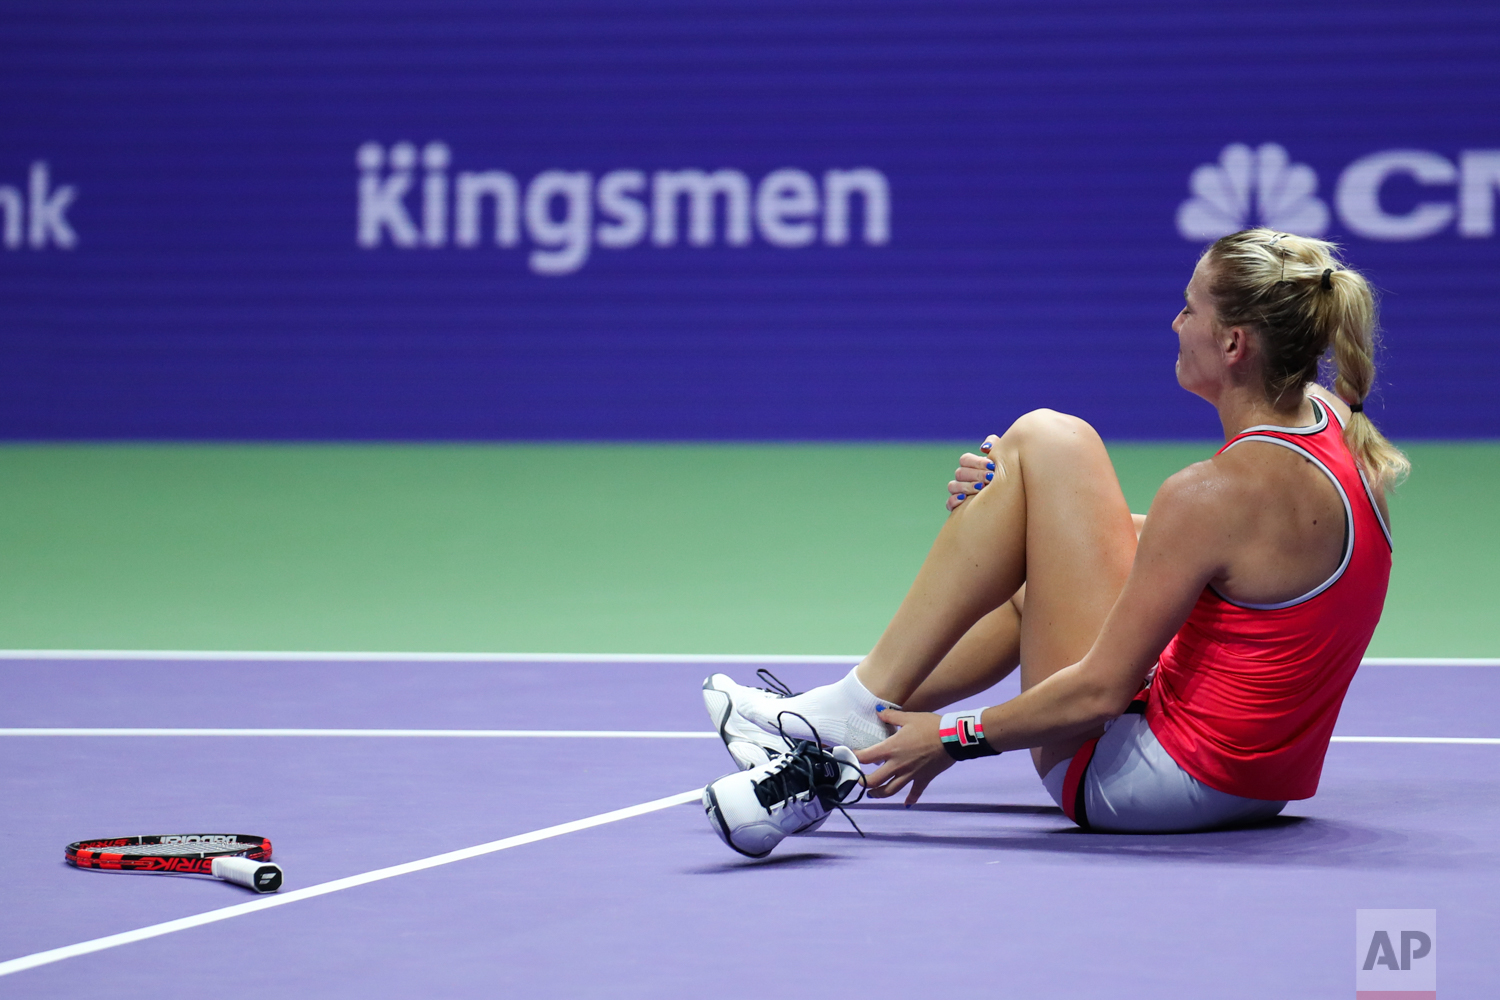 Timea Babos of Hungary, as she pairs up with partner Andrea Hlavackova of the Czech Republic, takes off her shoe after sustaining a left ankle injury during their doubles semifinal match against Martina Hingis of Switzerland and Chan Yung-Jan of Taiwan at the WTA tennis tournament in Singapore, on Saturday, Oct. 28, 2017. (AP Photo/Yong Teck Lim)